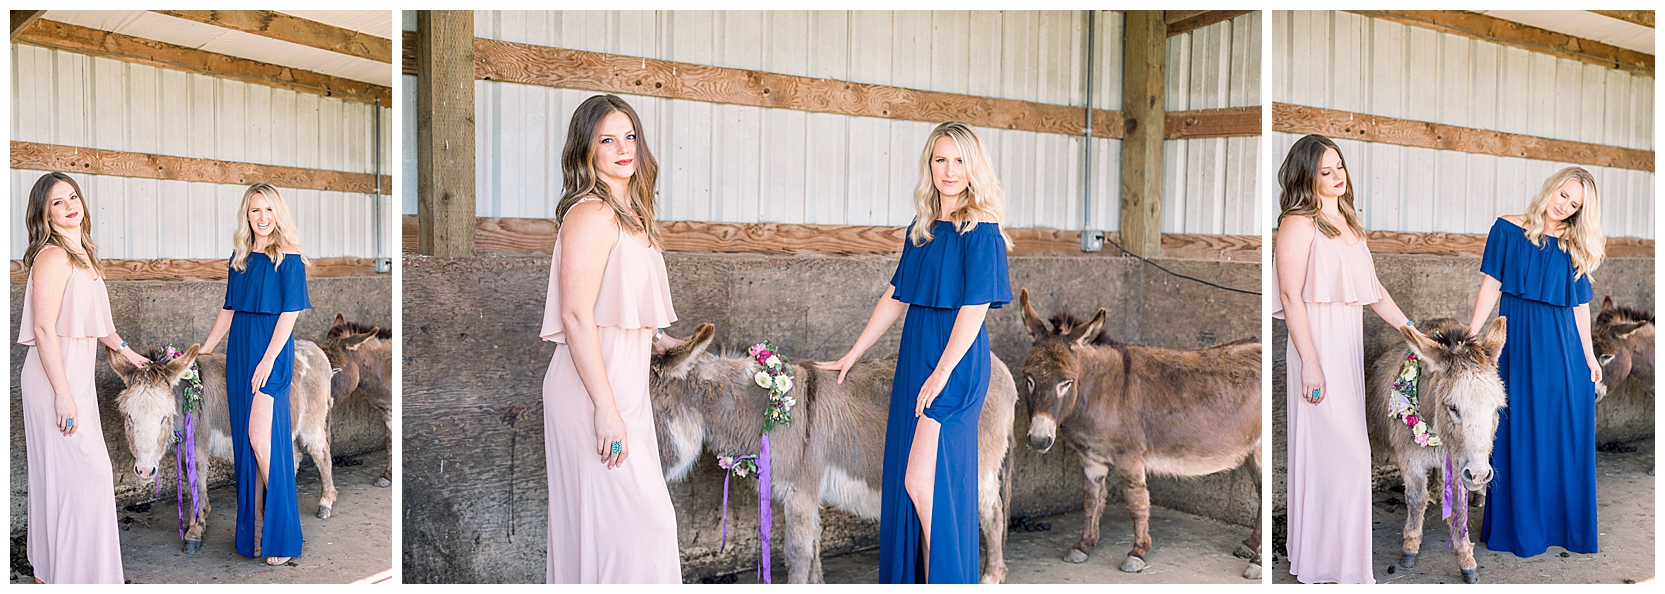 jessicafredericks_st petersburg_wedding_photographer_bridesmaid_farm_donkey_flower crown_inspo_0008.jpg